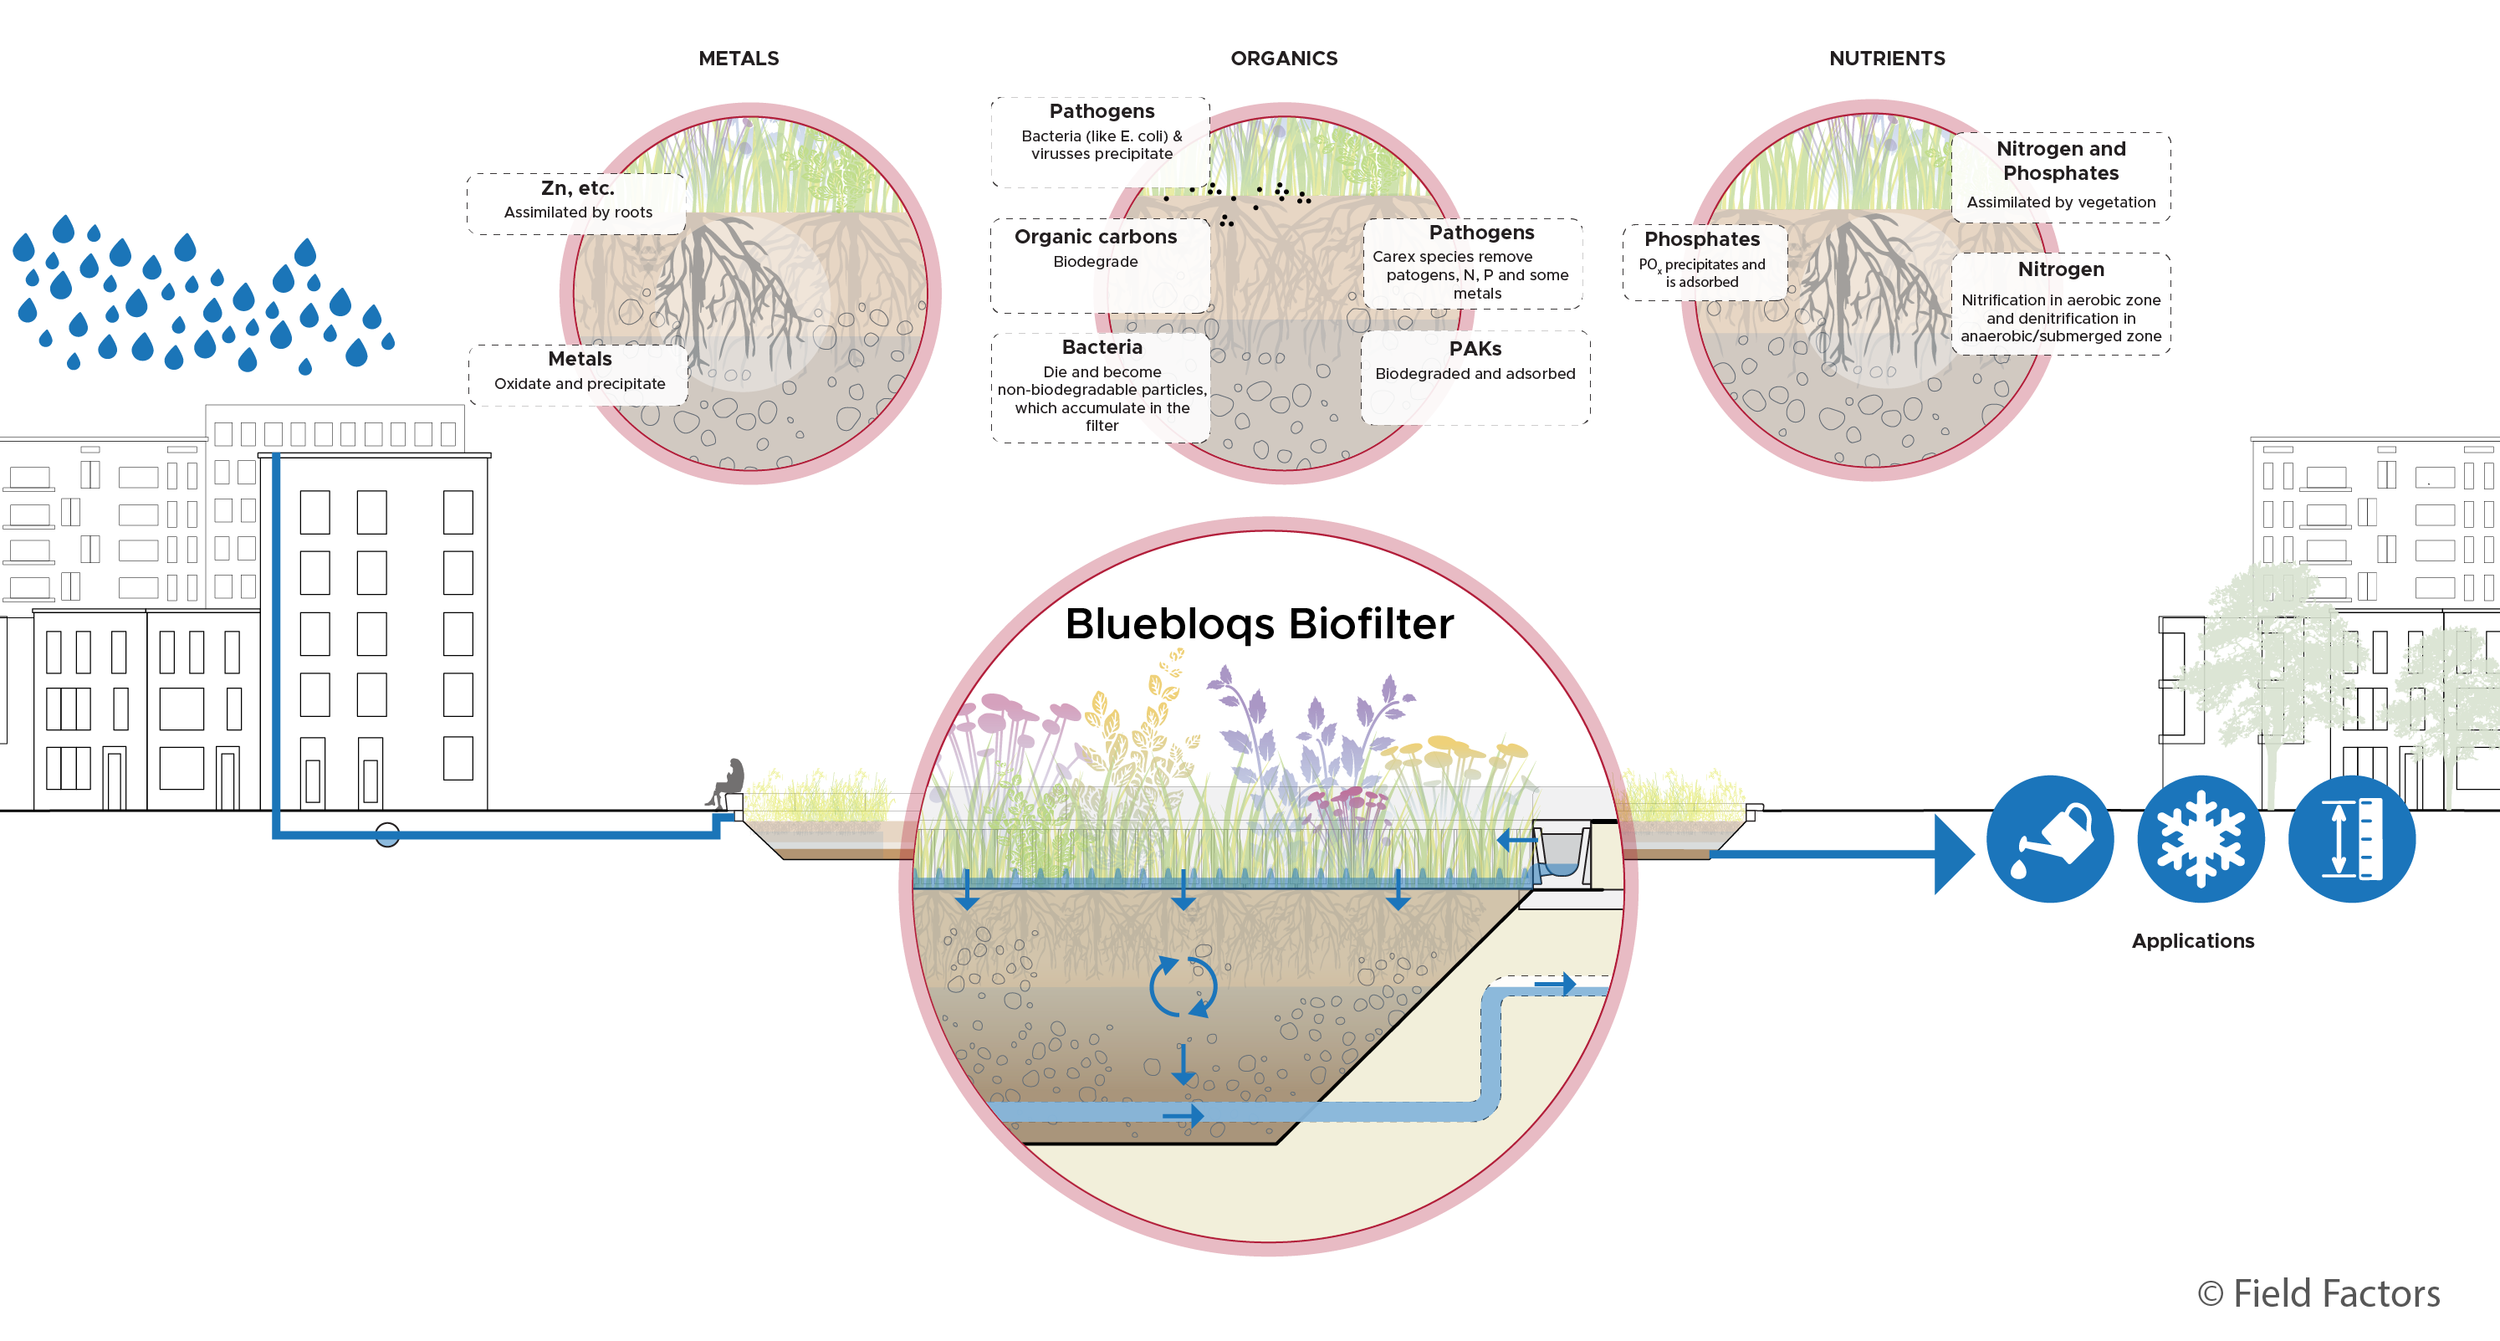 Performance of Bluebloqs Biofilter